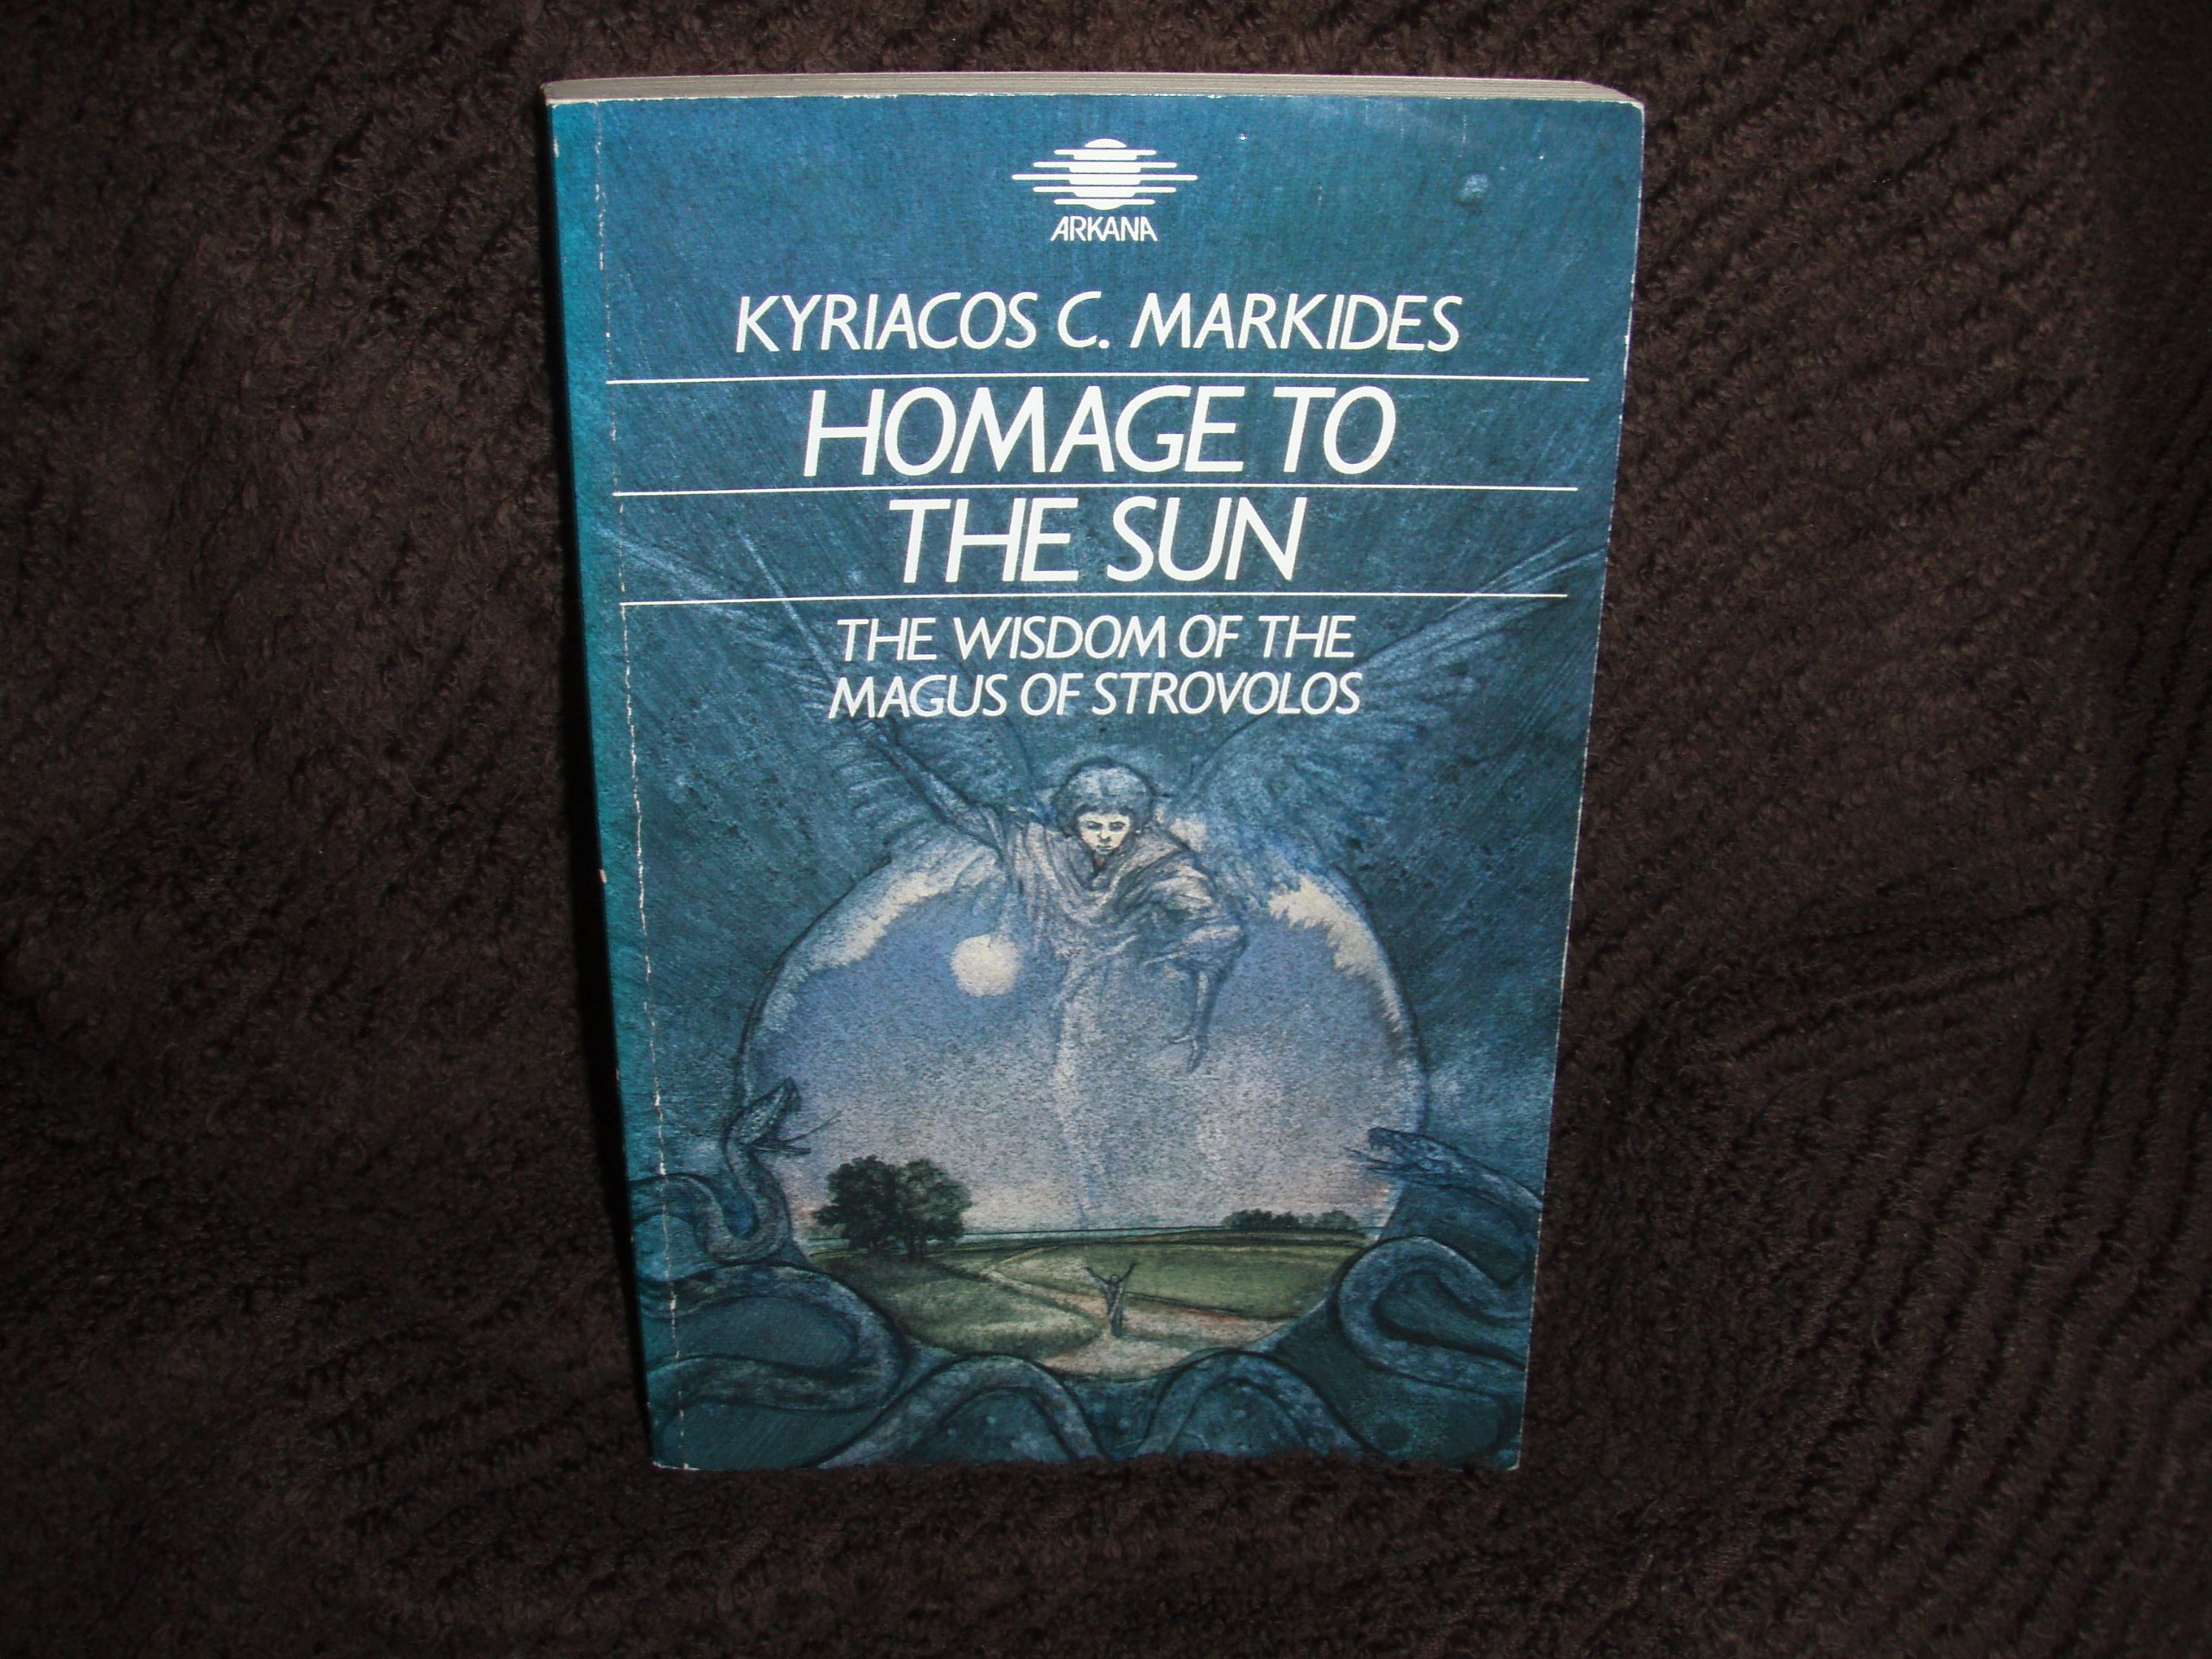 Homage to the sun: the wisdom of the magus of strovolos: kyriacos.